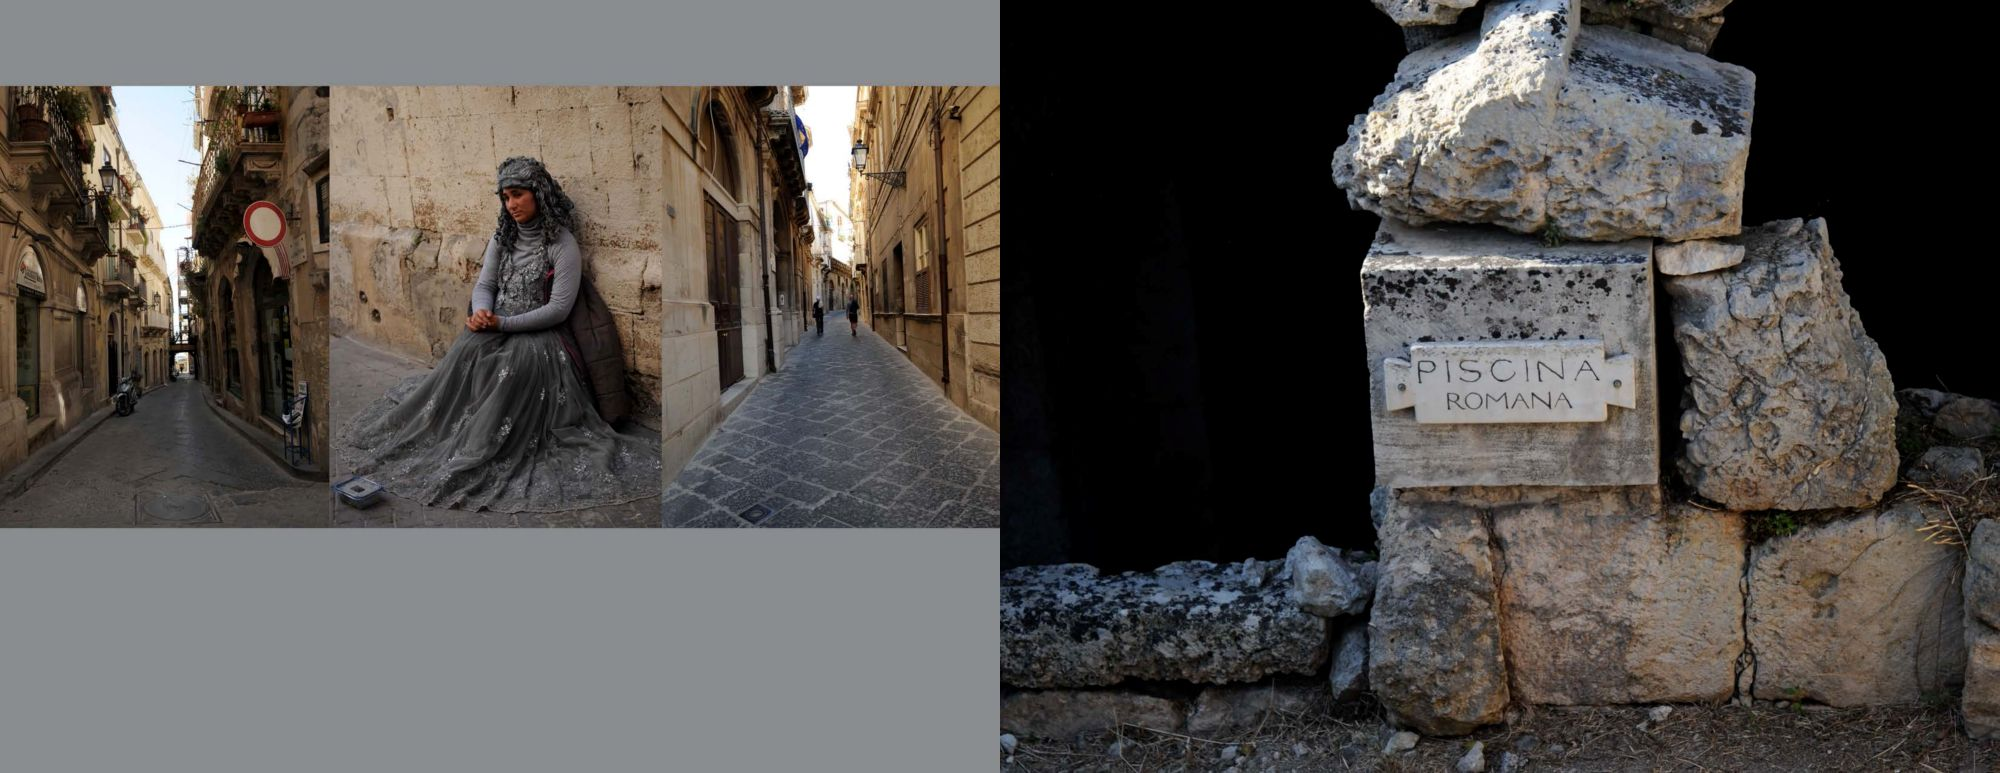 Sicily Album - Page 26: 2 Alleys and a corner / Page 27: Piscina Romana